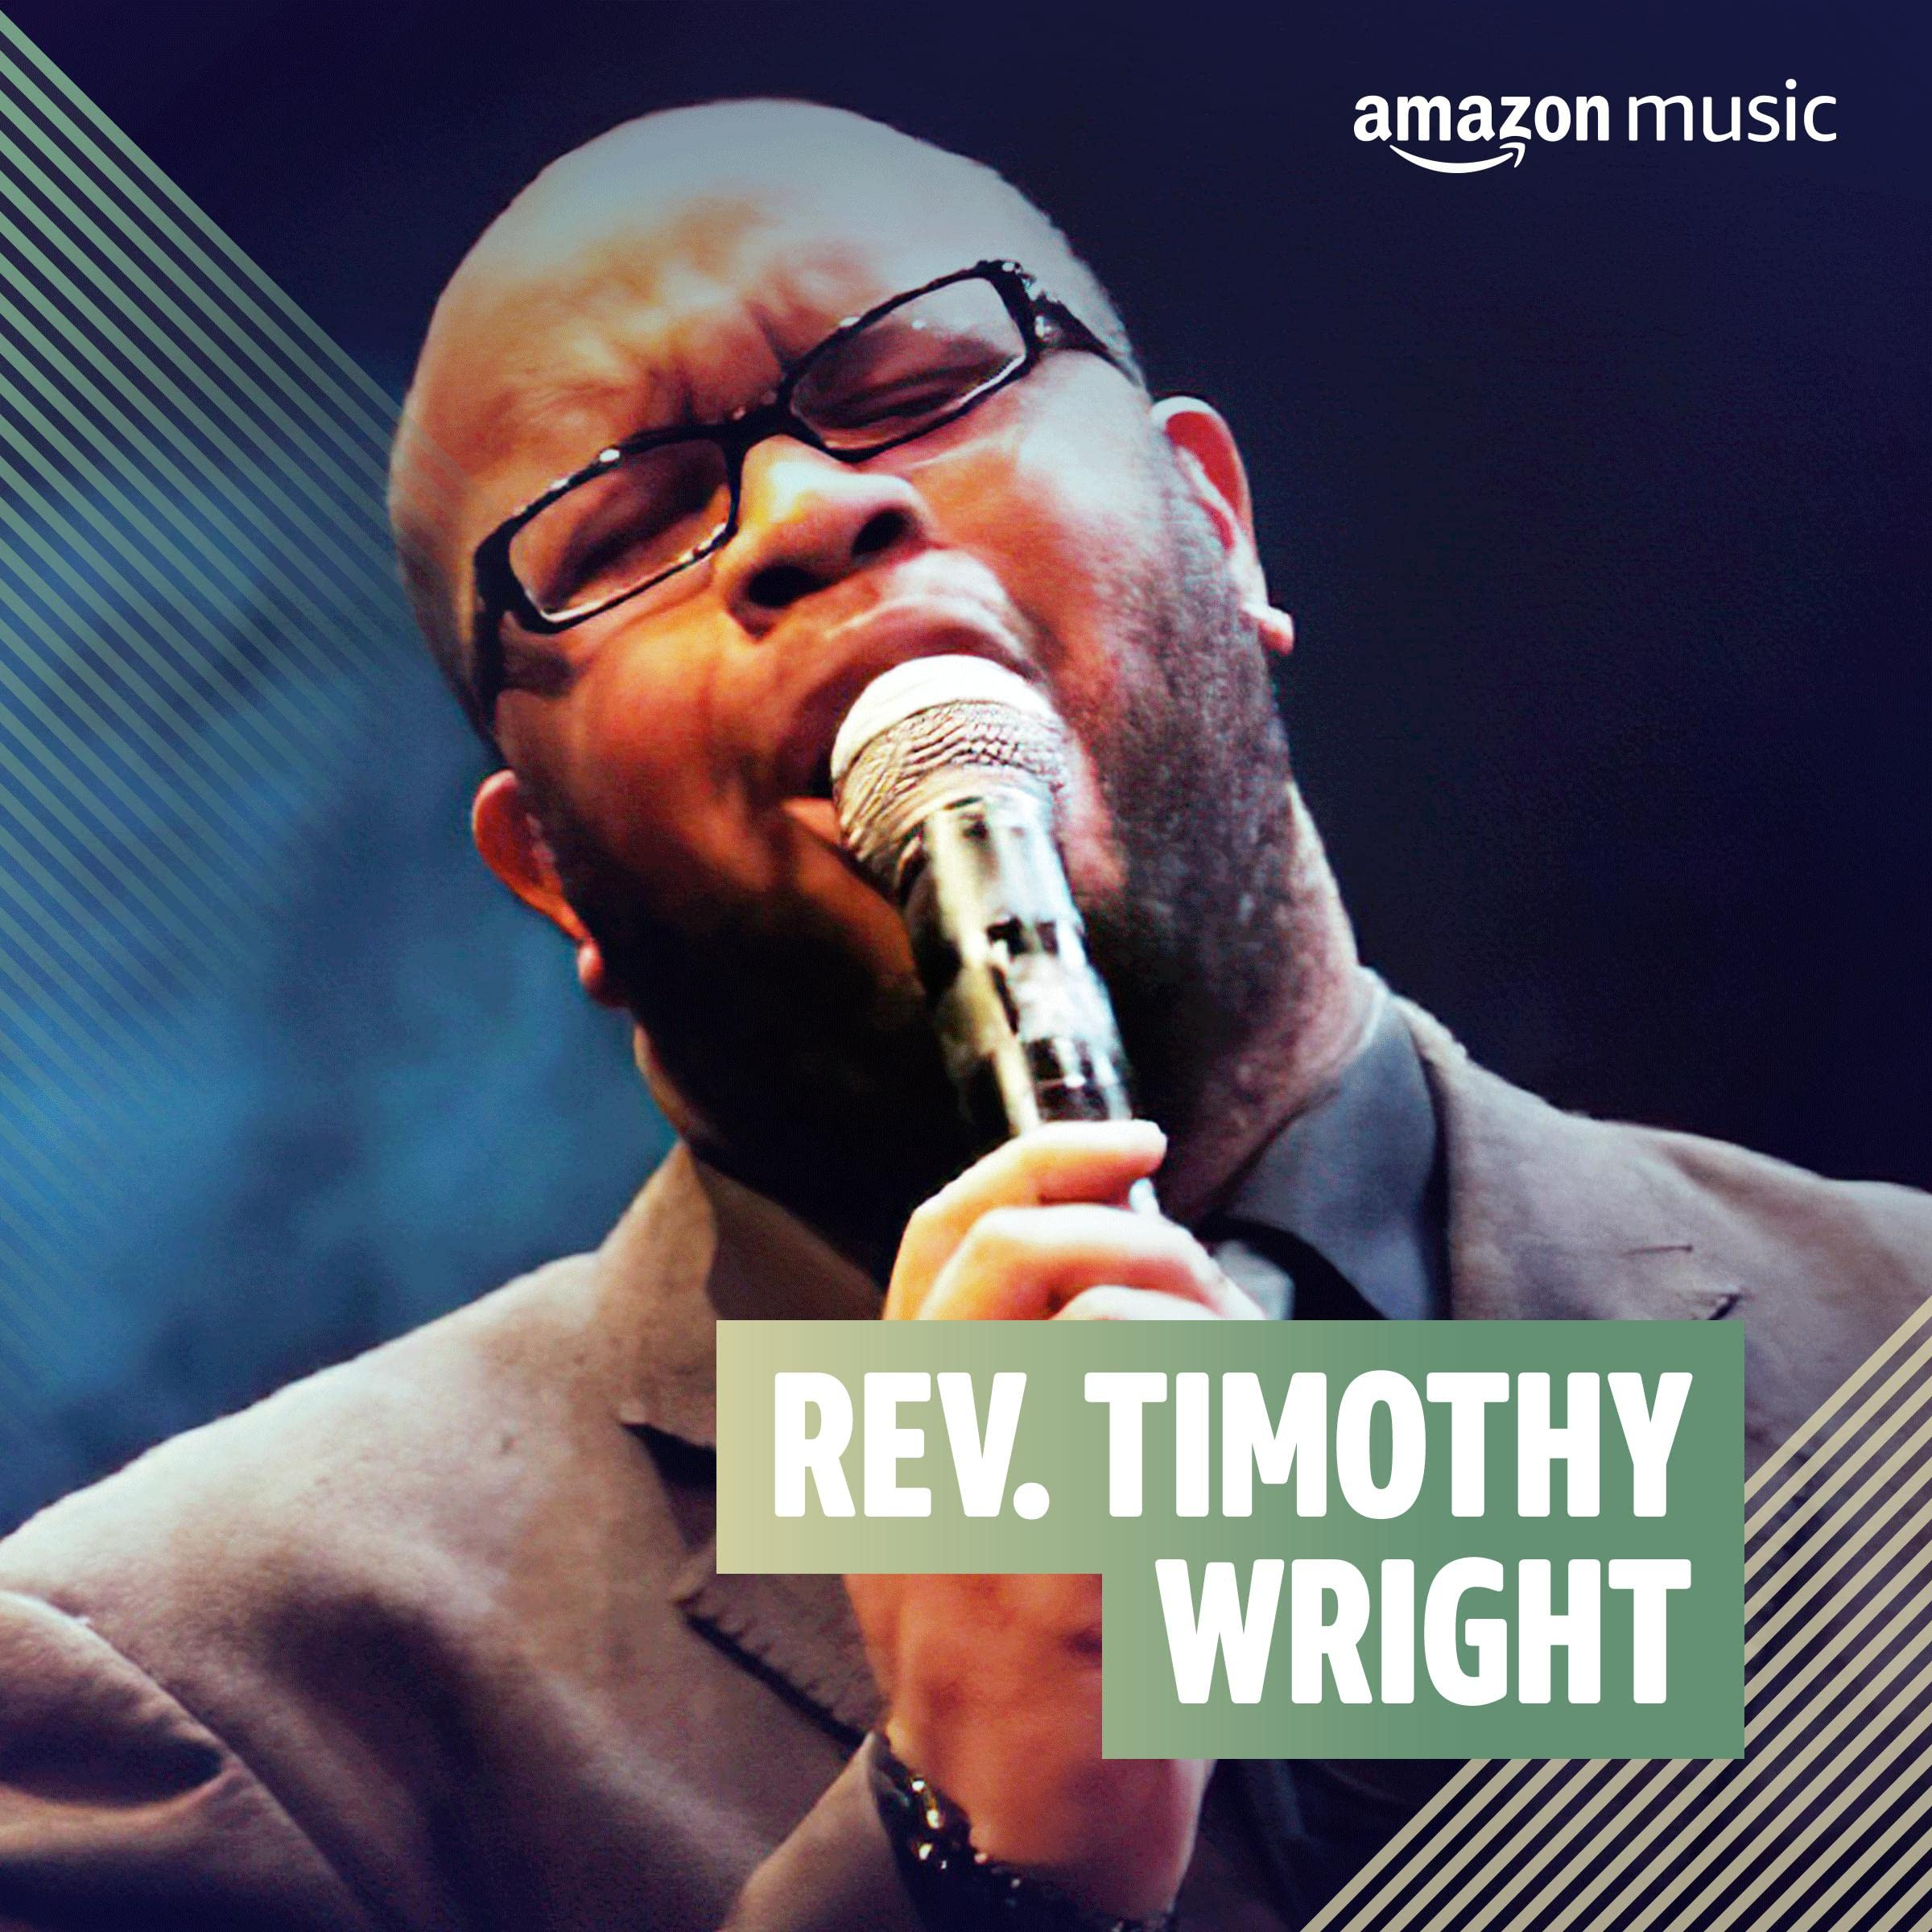 Rev. Timothy Wright